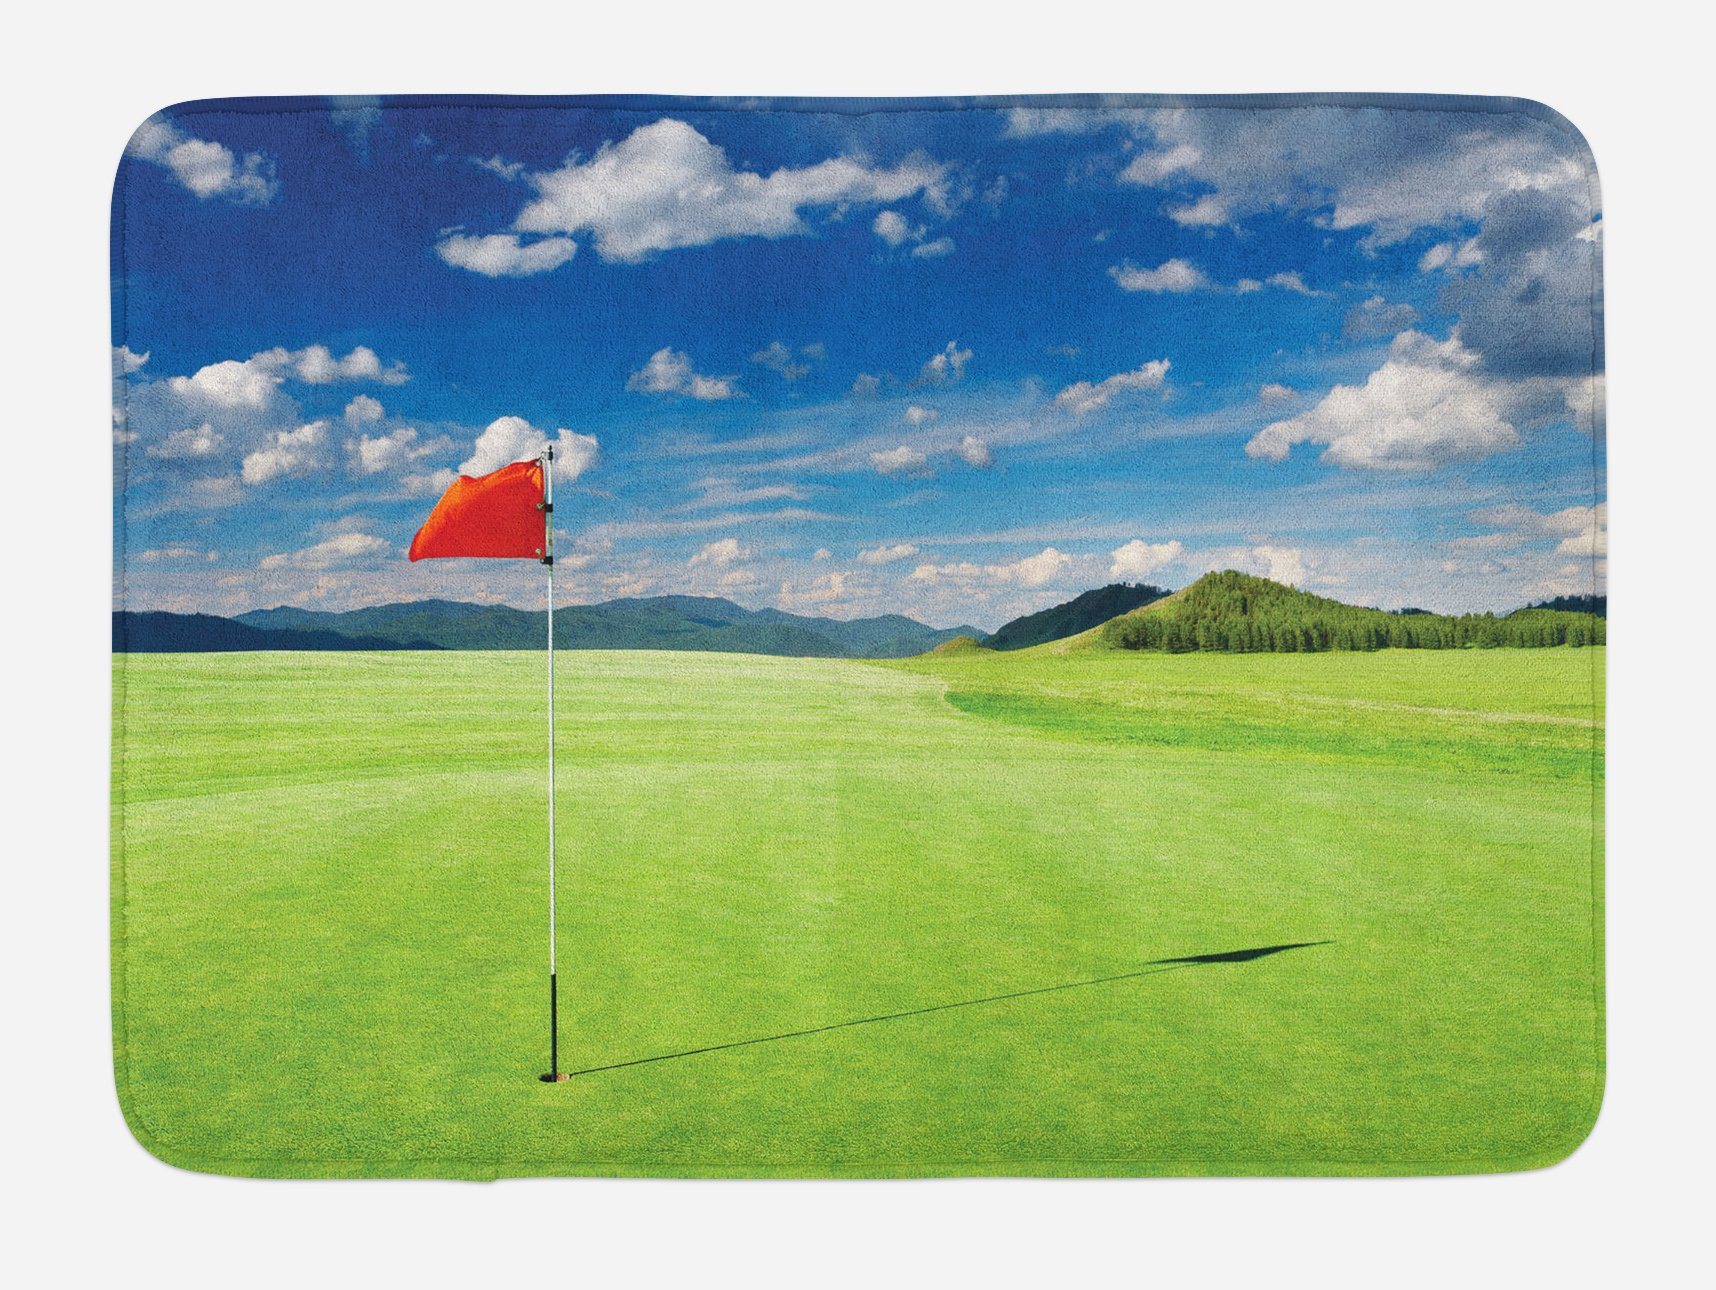 Lunarable Sports Bath Mat, Golf Field with Flag in the Hole Clouds Sky Summertime Golfing Landscape, Plush Bathroom Decor Mat with Non Slip Backing, 29.5 W X 17.5 W Inches, Blue Red Lime Green